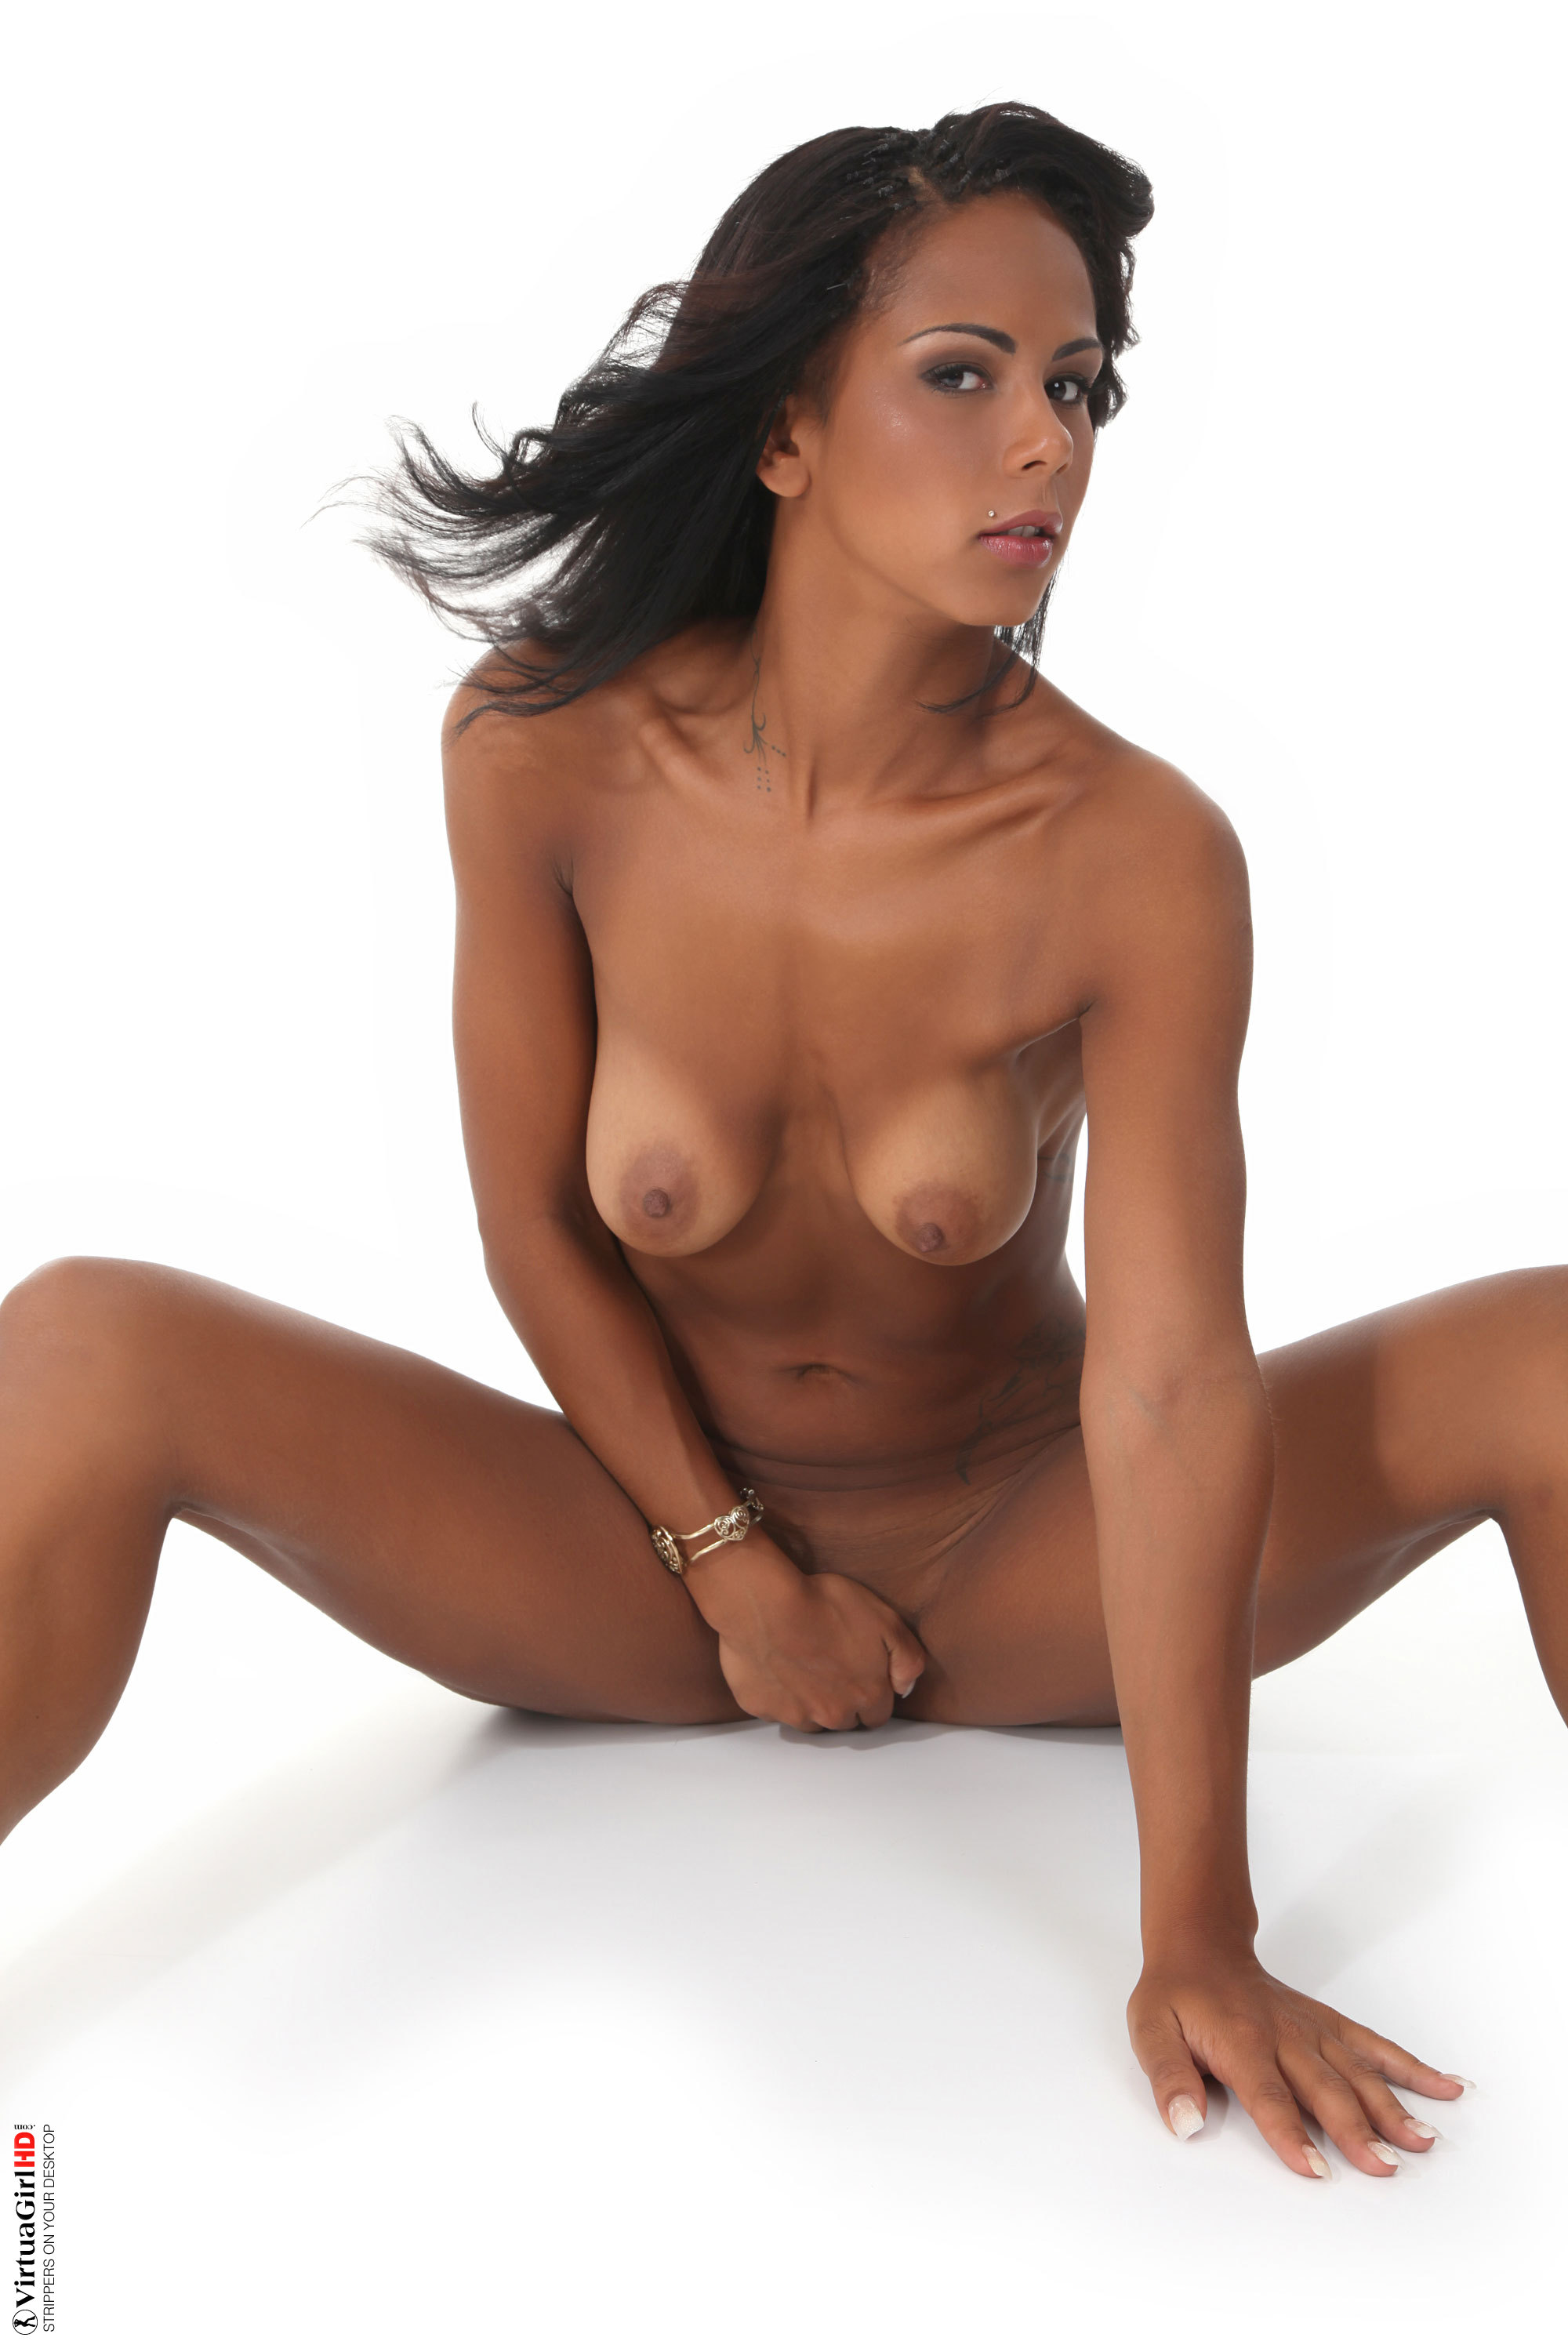 hd wallpapers nude african